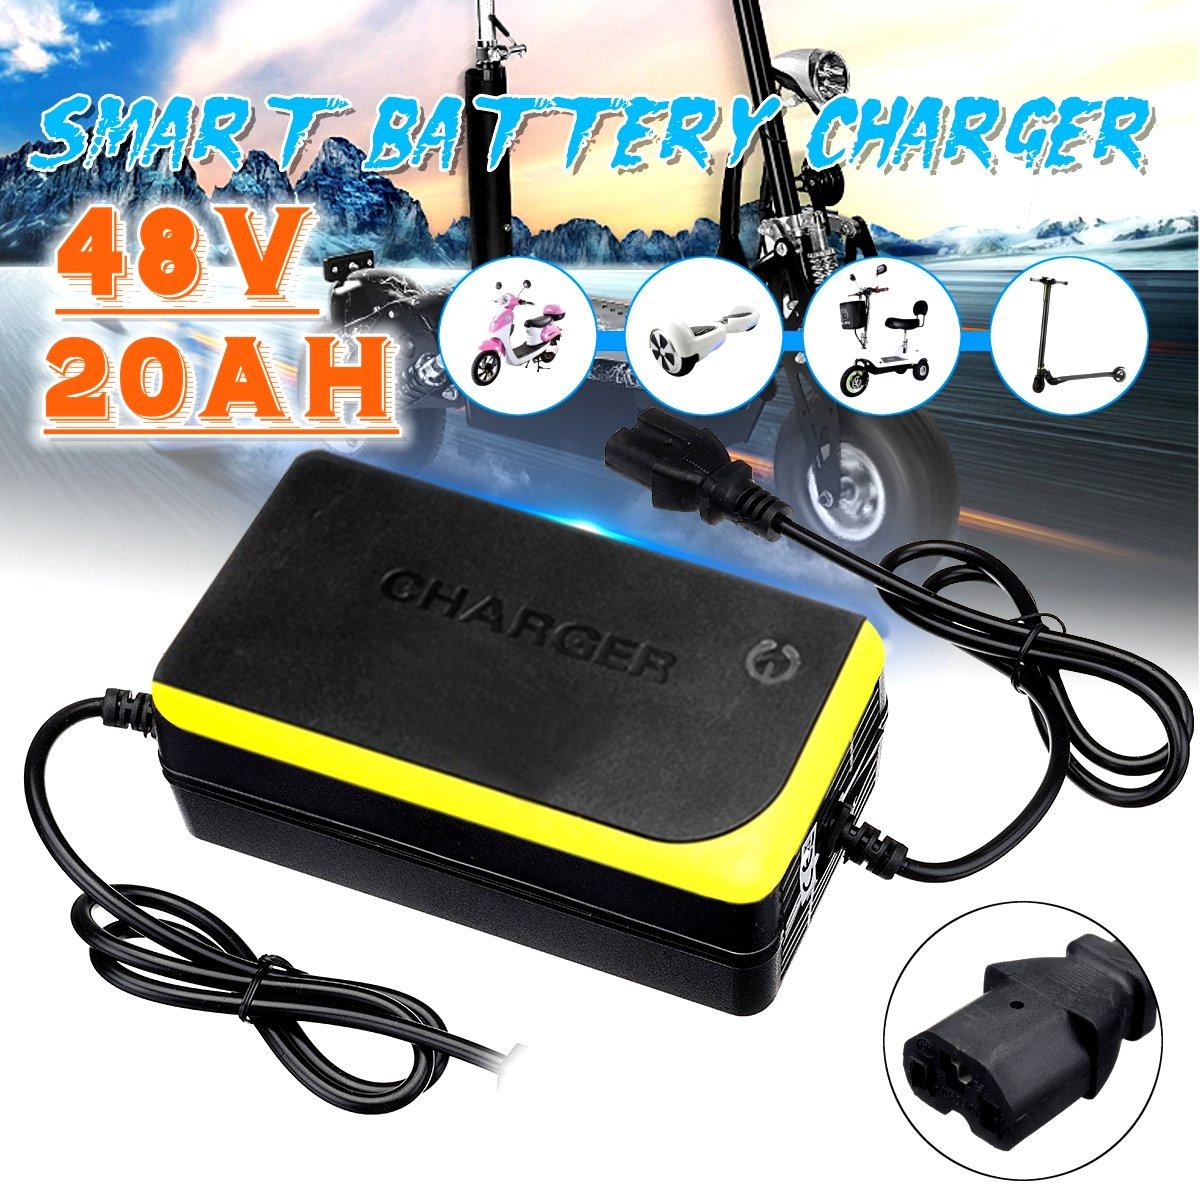 48V 20AH Electric Bicycle Bike Scooters Motorcycle Charger Smart Power Supply Lead Acid Battery Charger 48V 1.8A 20AH